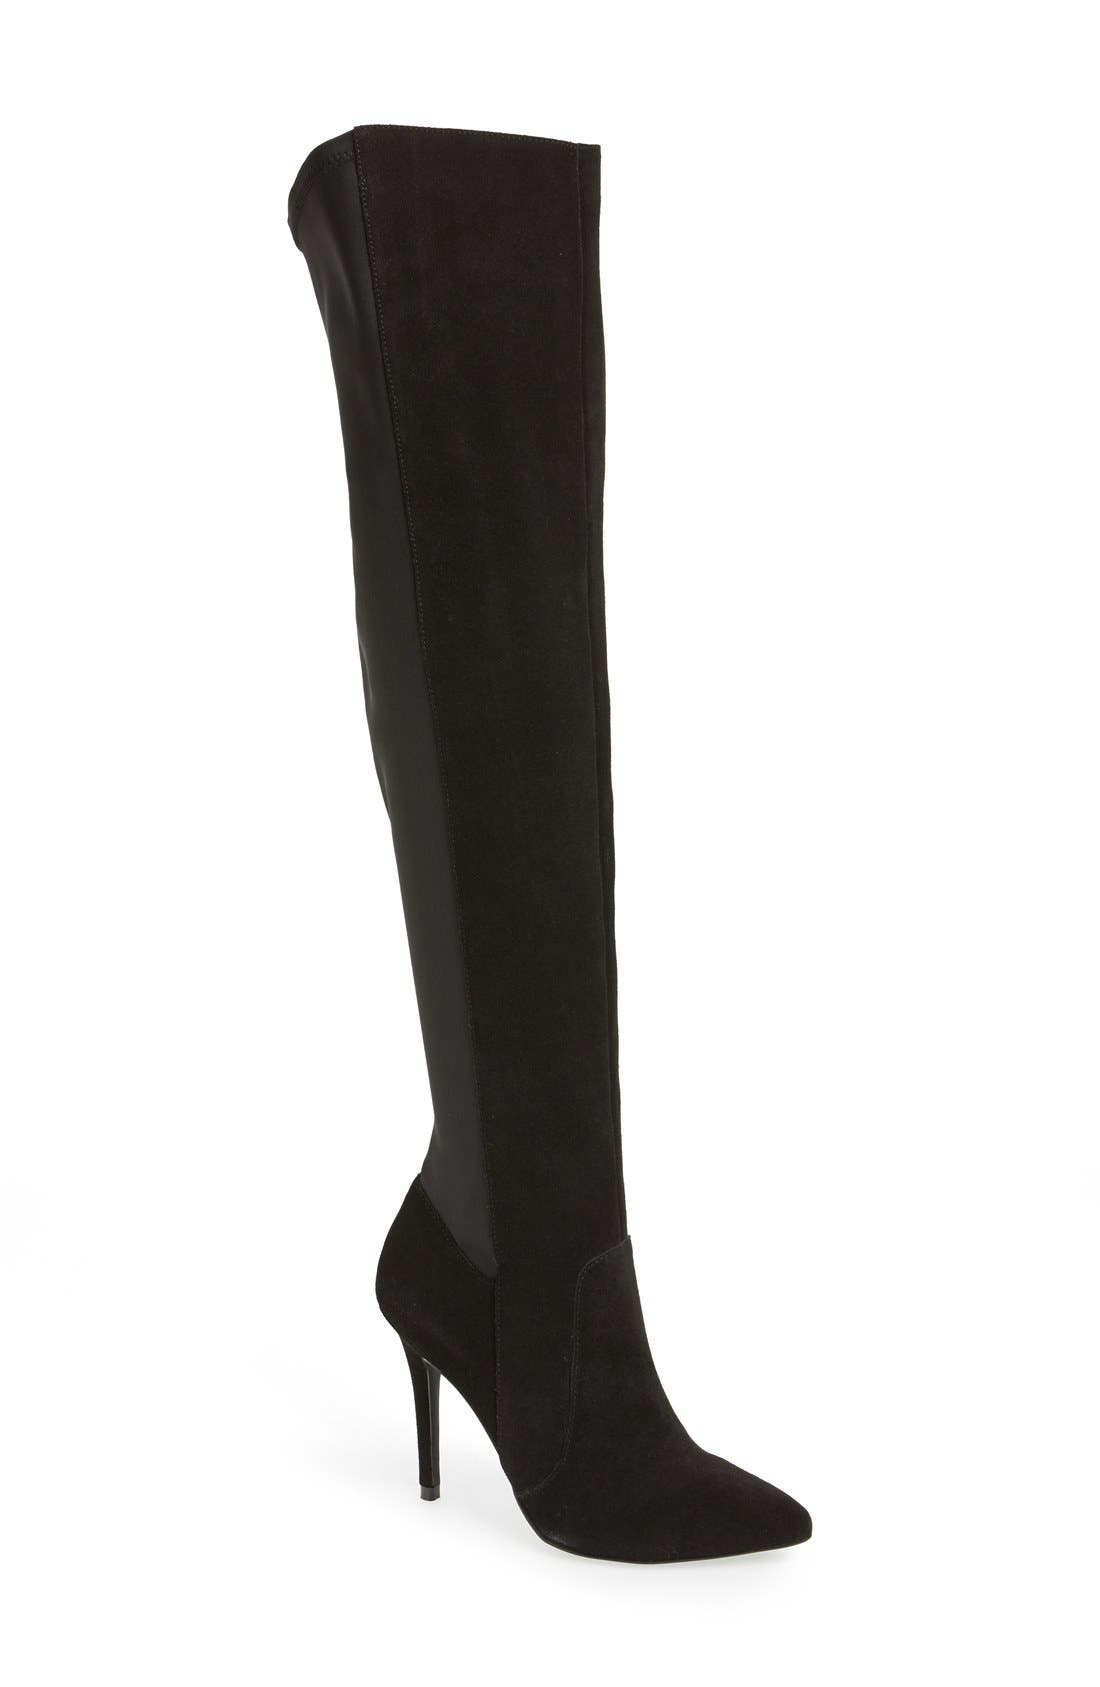 CHARLES BY CHARLES DAVID 'Paso' Over The Knee Boot, Main, color, 002